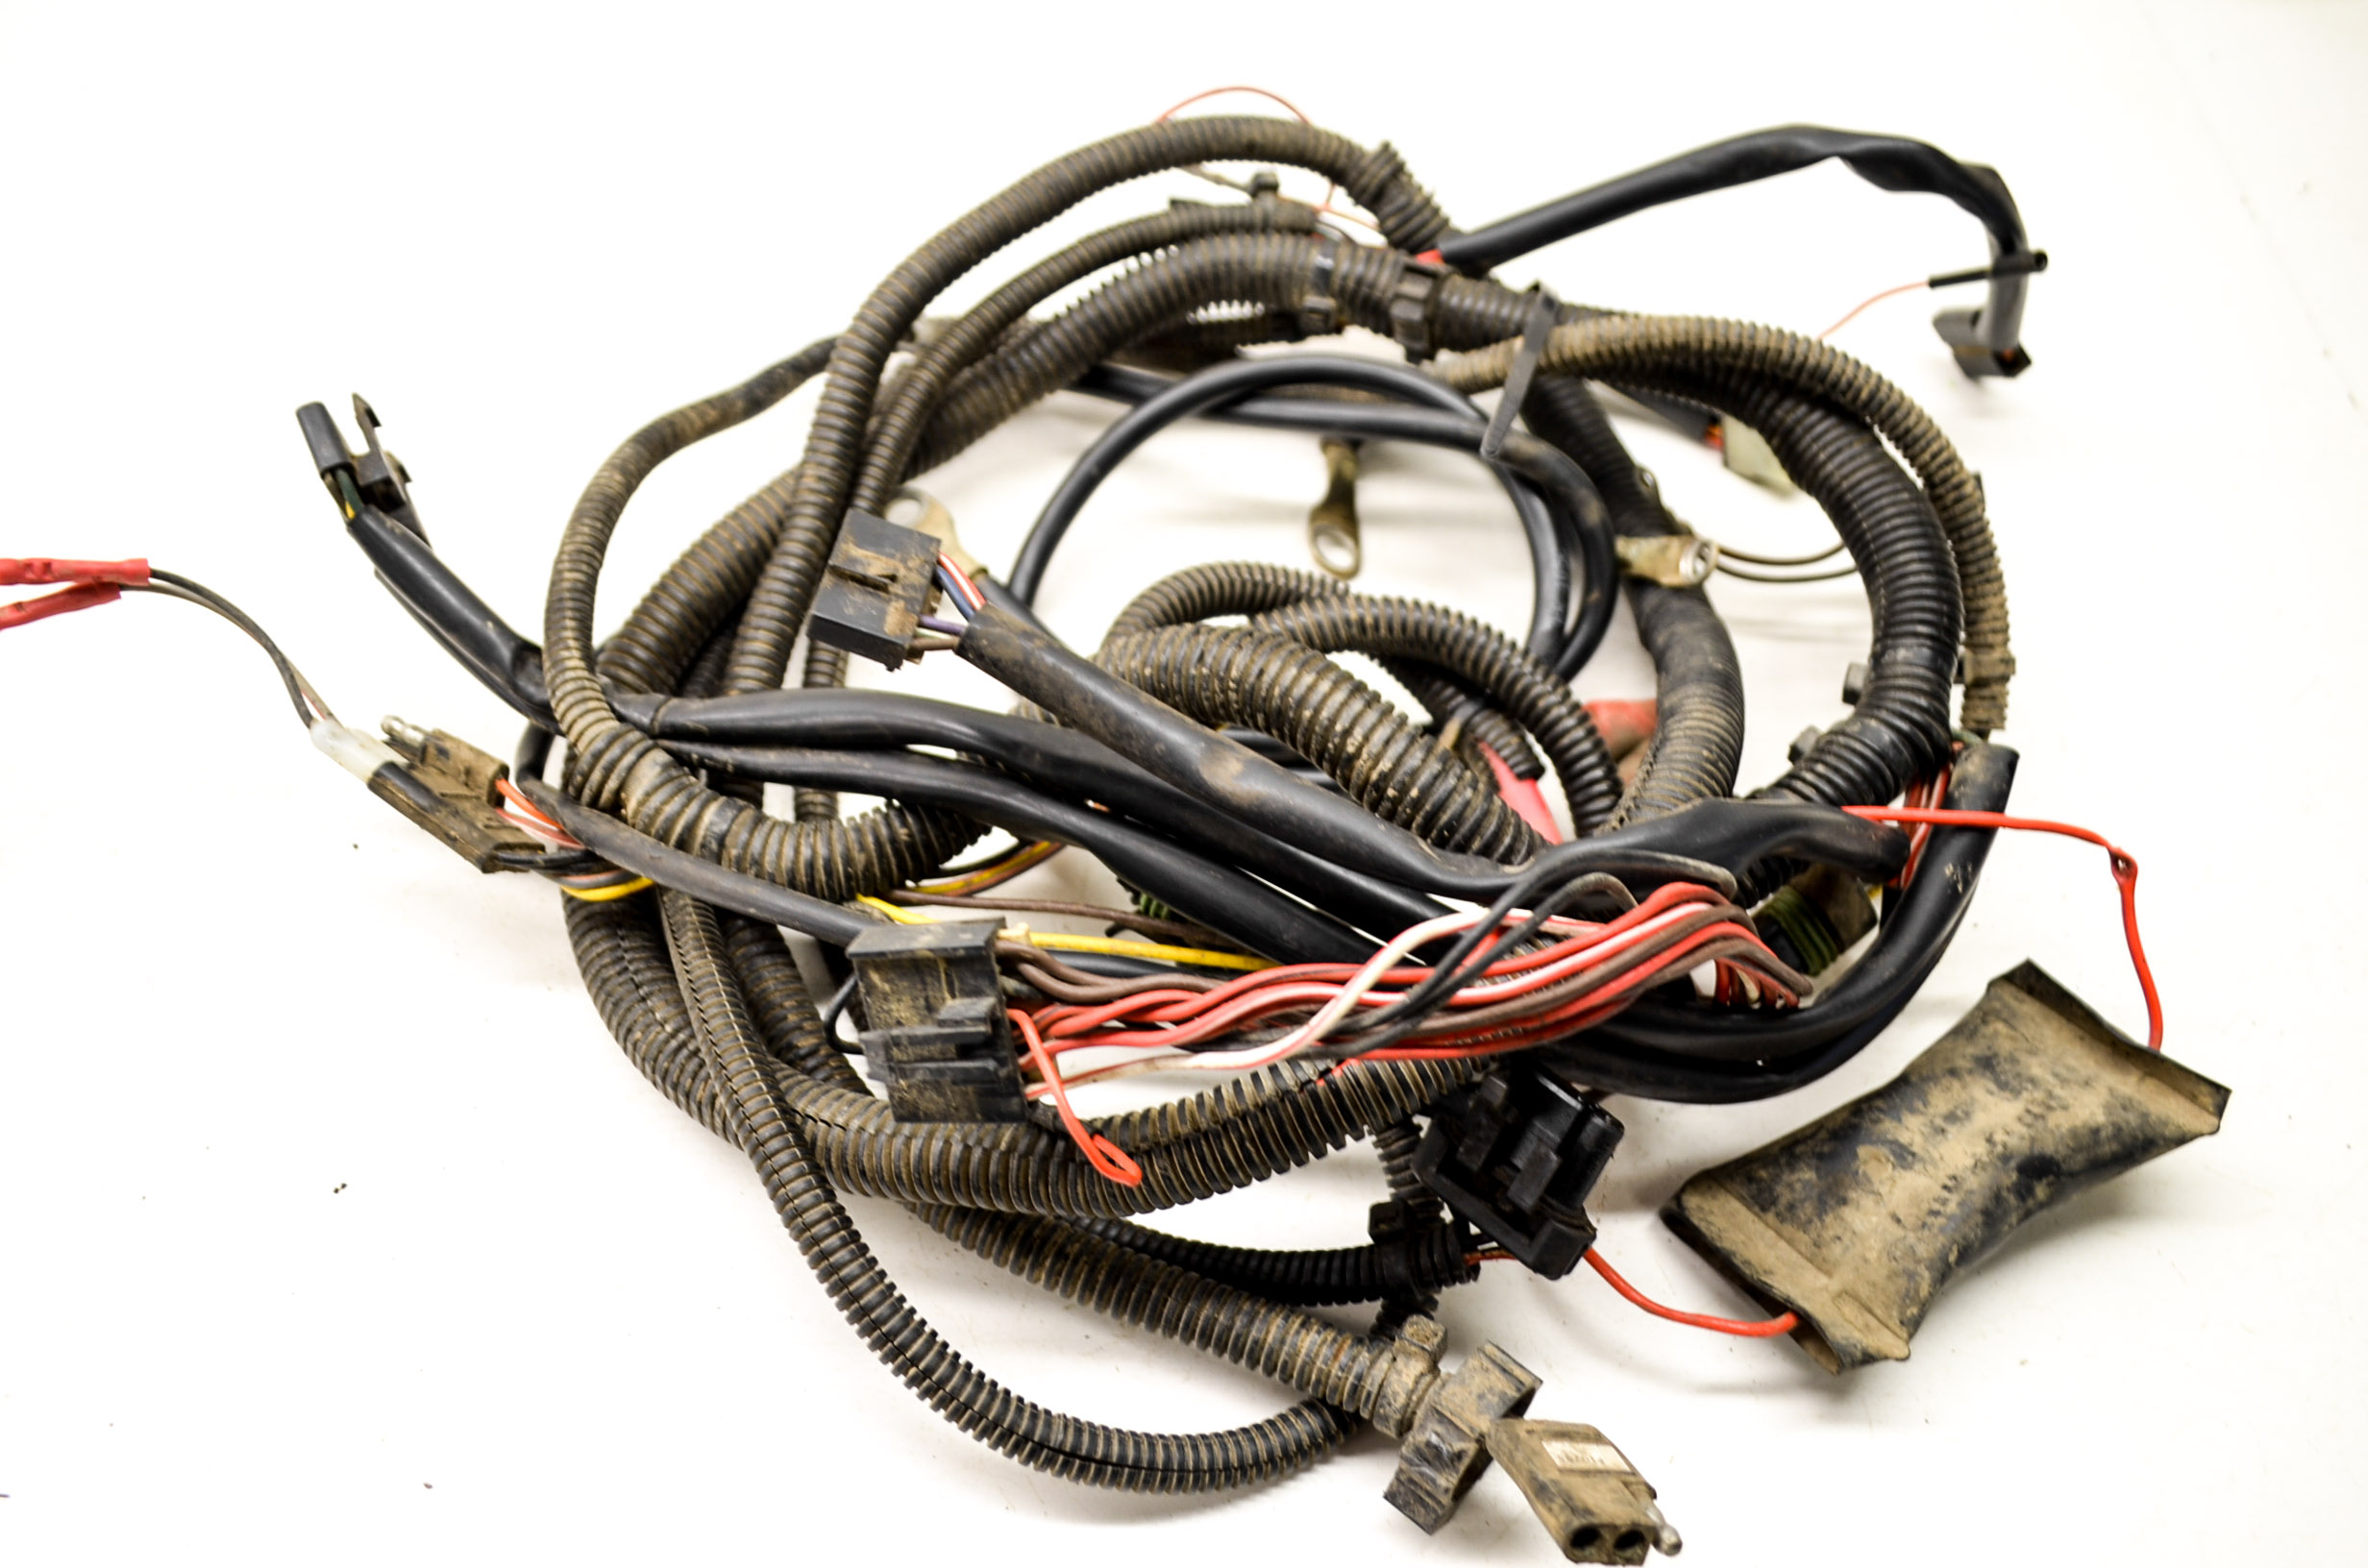 03 Polaris Trail Boss 330 2x4 Wire Harness Electrical Wiring